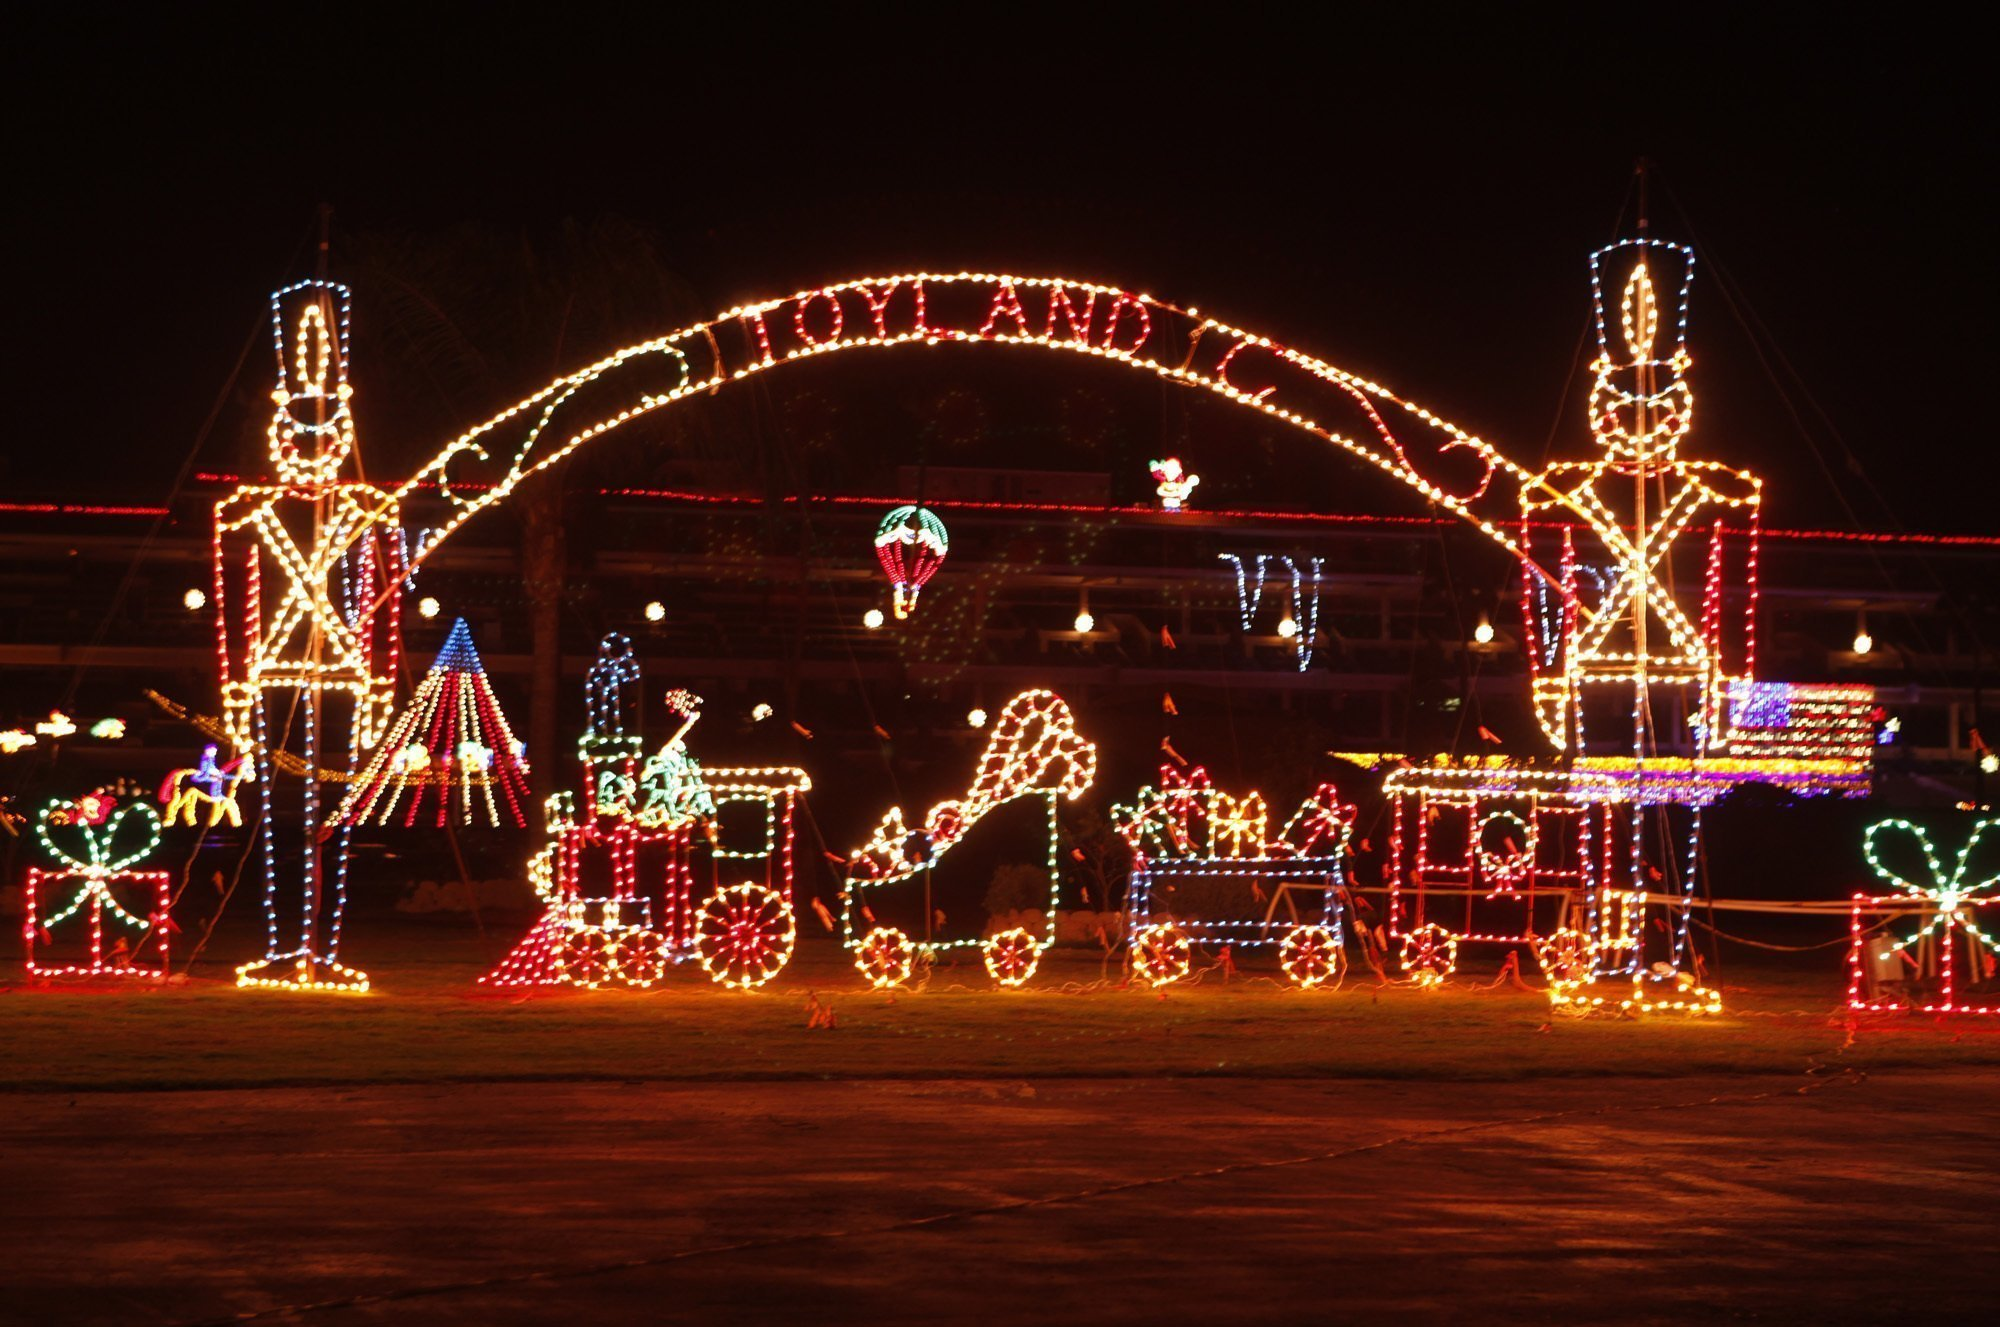 Del Mar light show takes a holiday - The San Diego Union-Tribune